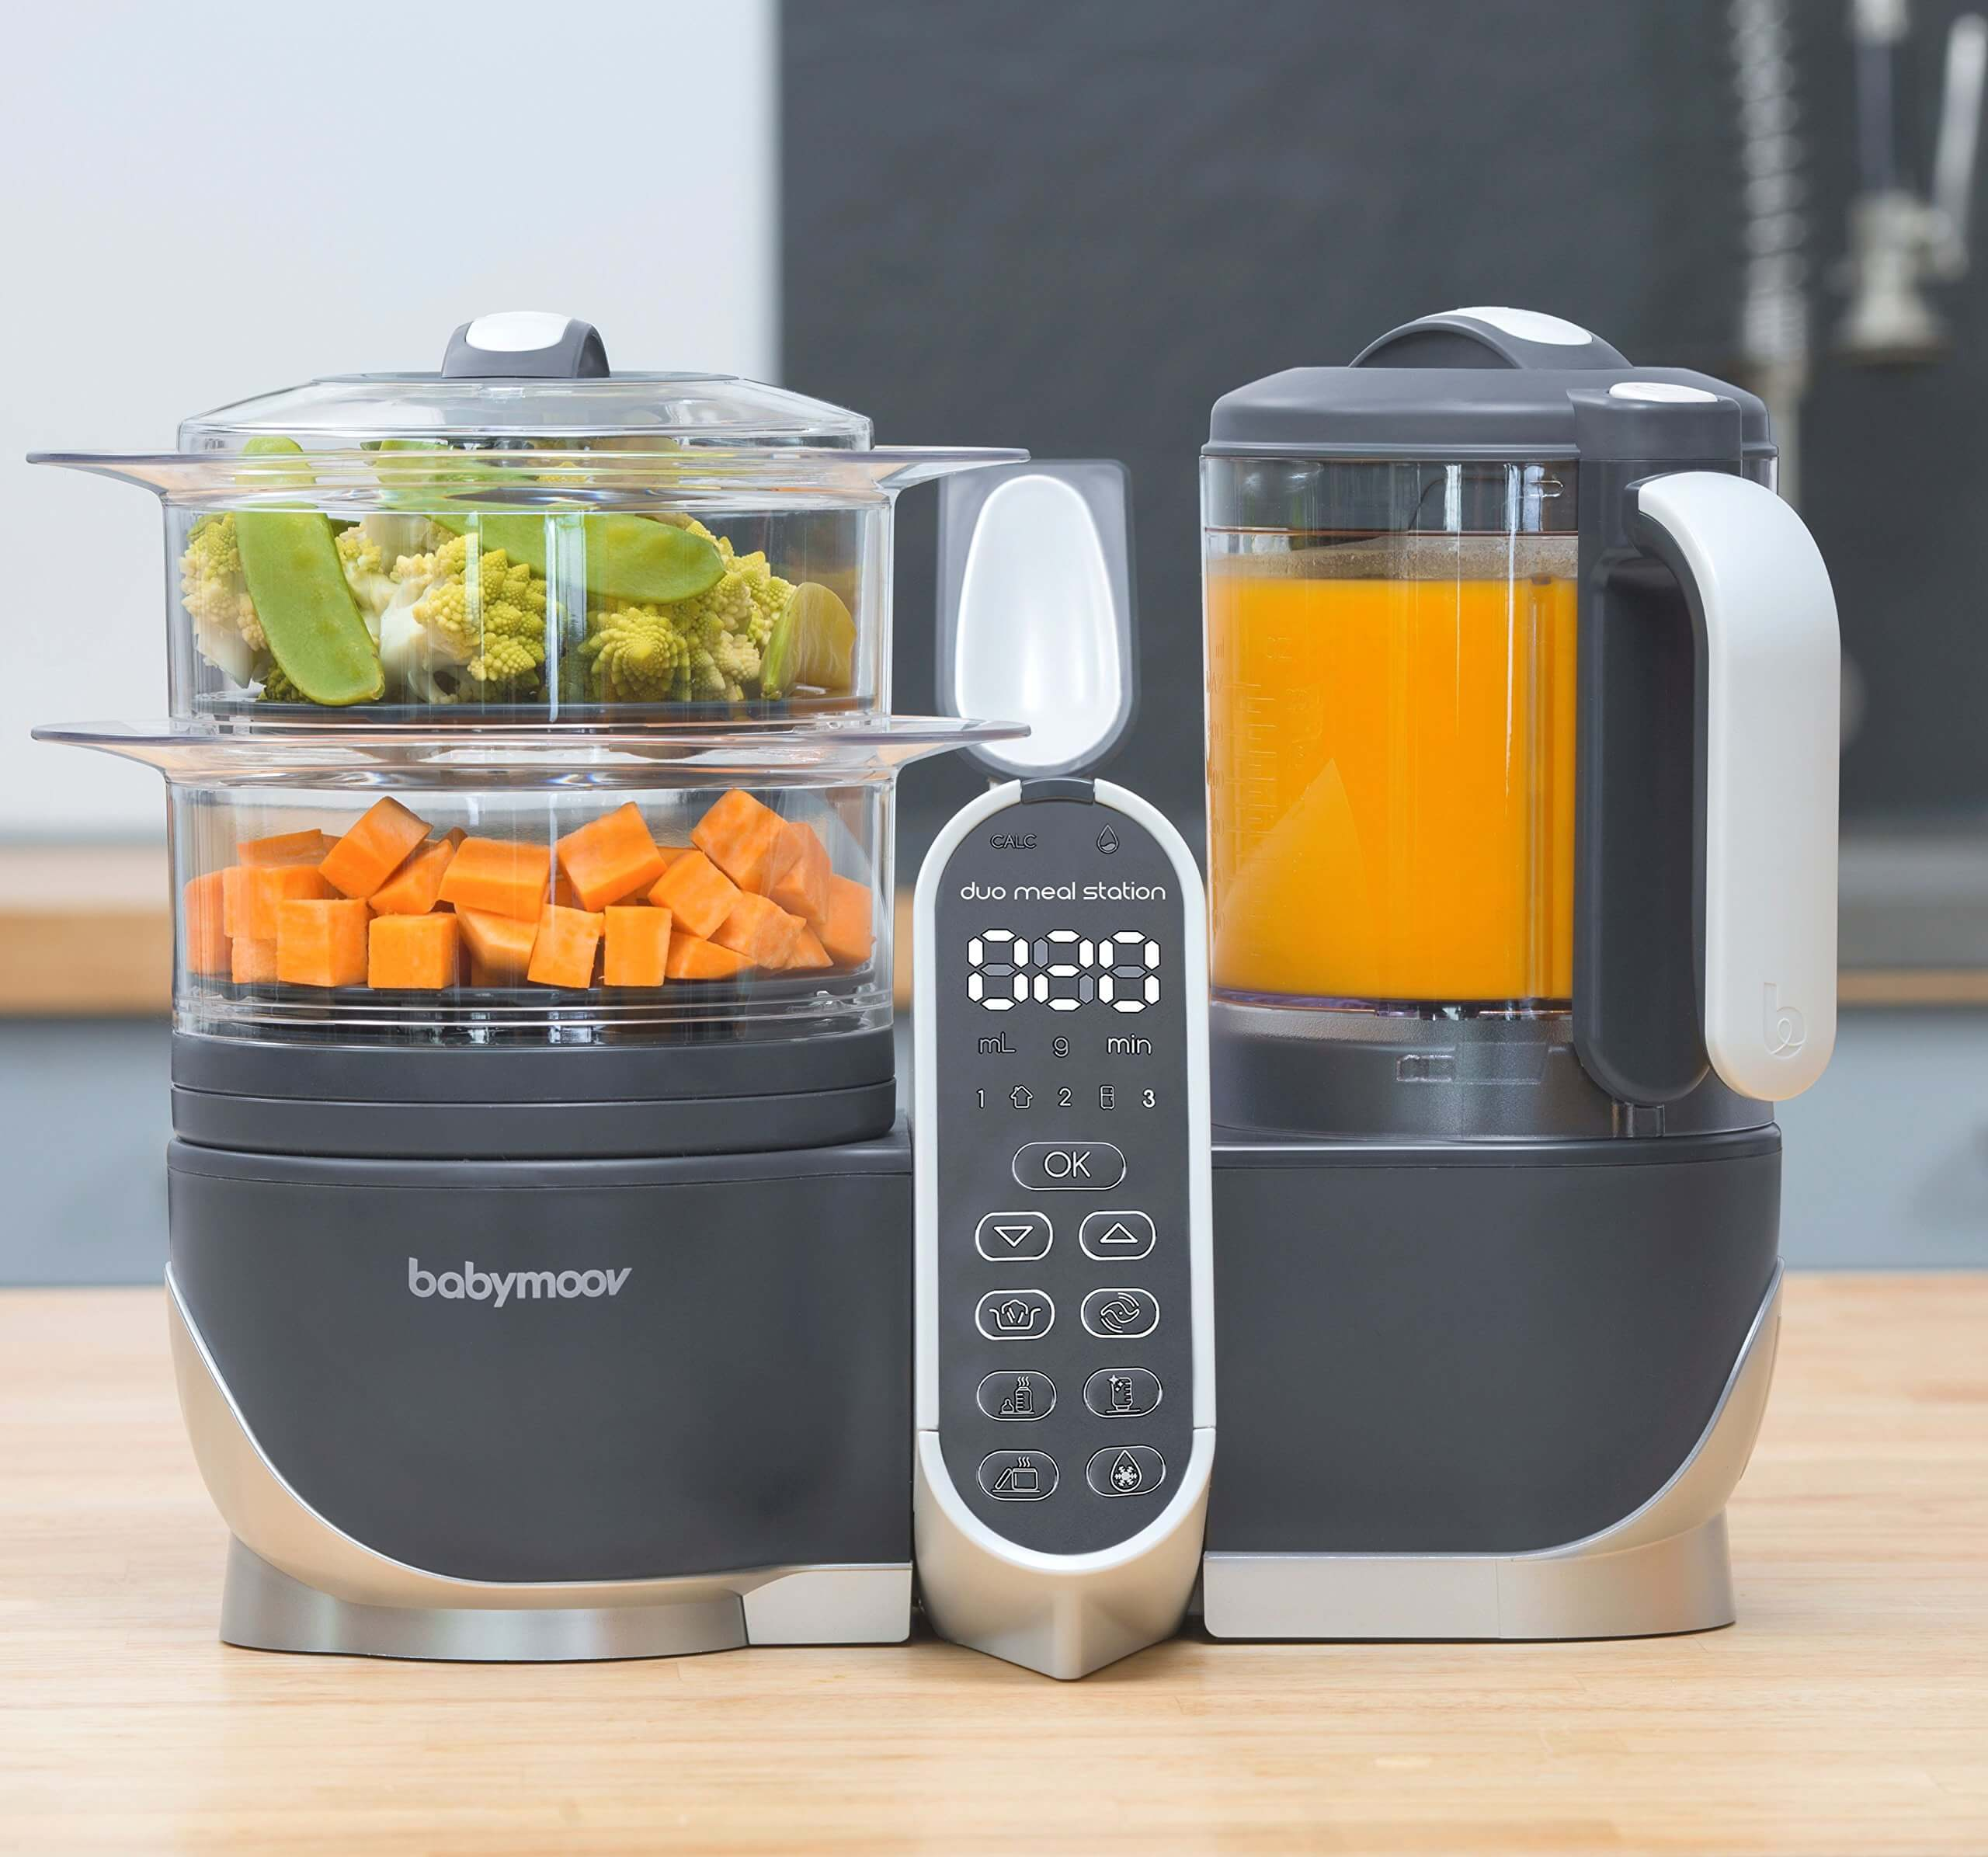 best baby food brand for best baby food maker, Babymoov Duo Meal Station Food Maker 6-in-1, baby food processor,